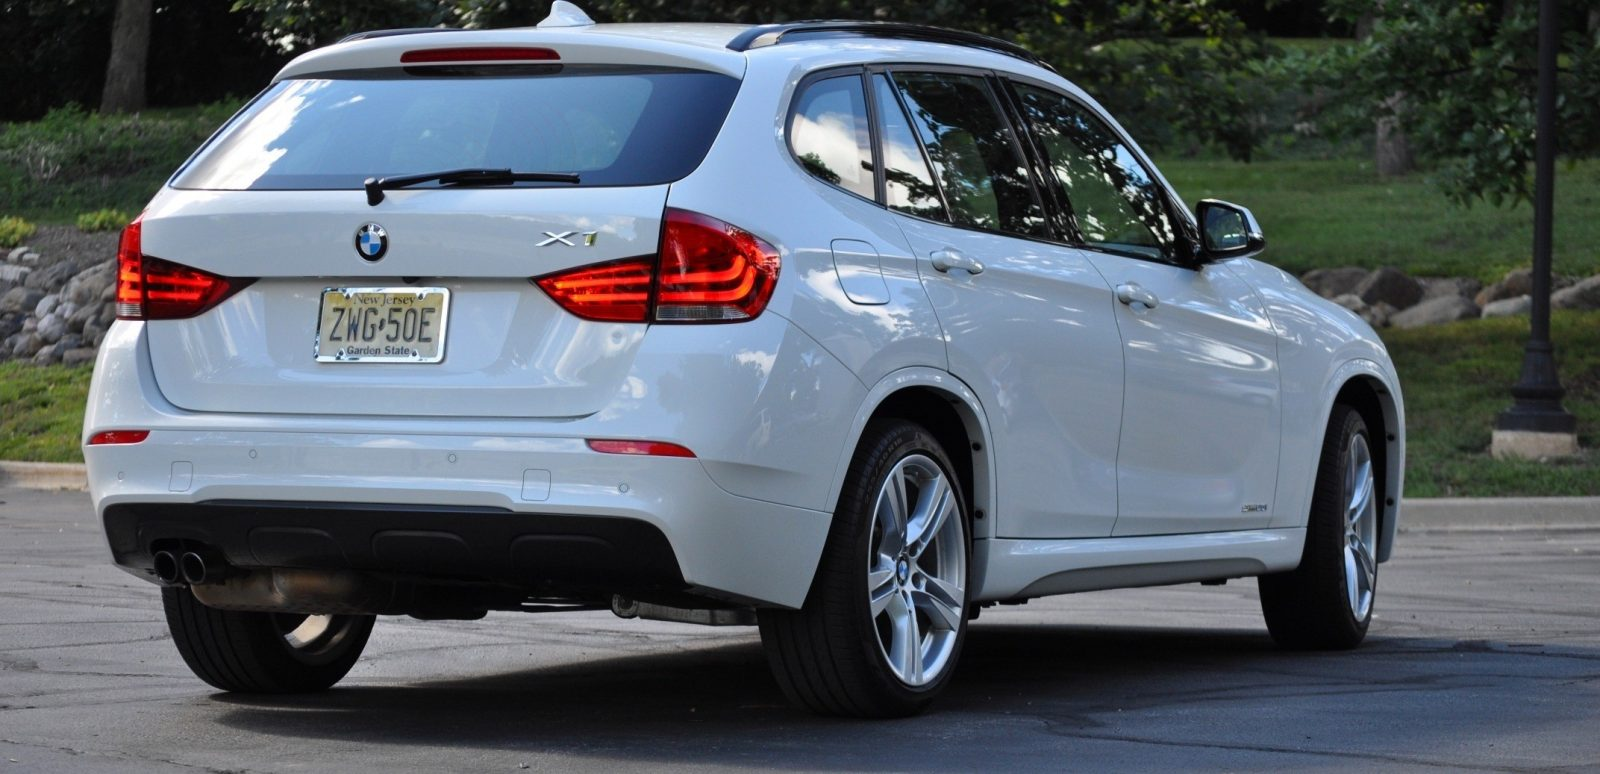 BMW X1 sDrive28i M Sport - Alpine White in 60 High-Res Photos45